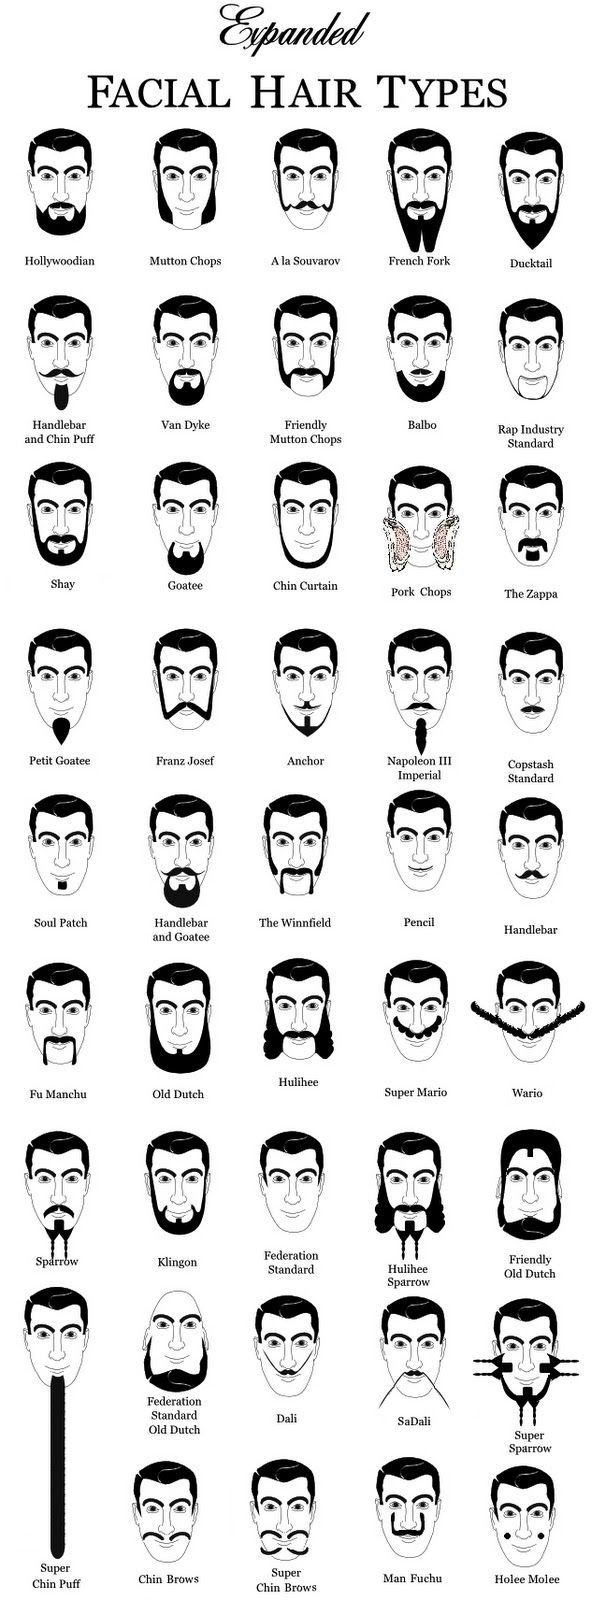 Backstage Buzz with FV: Alessi nativity - facial hair styles